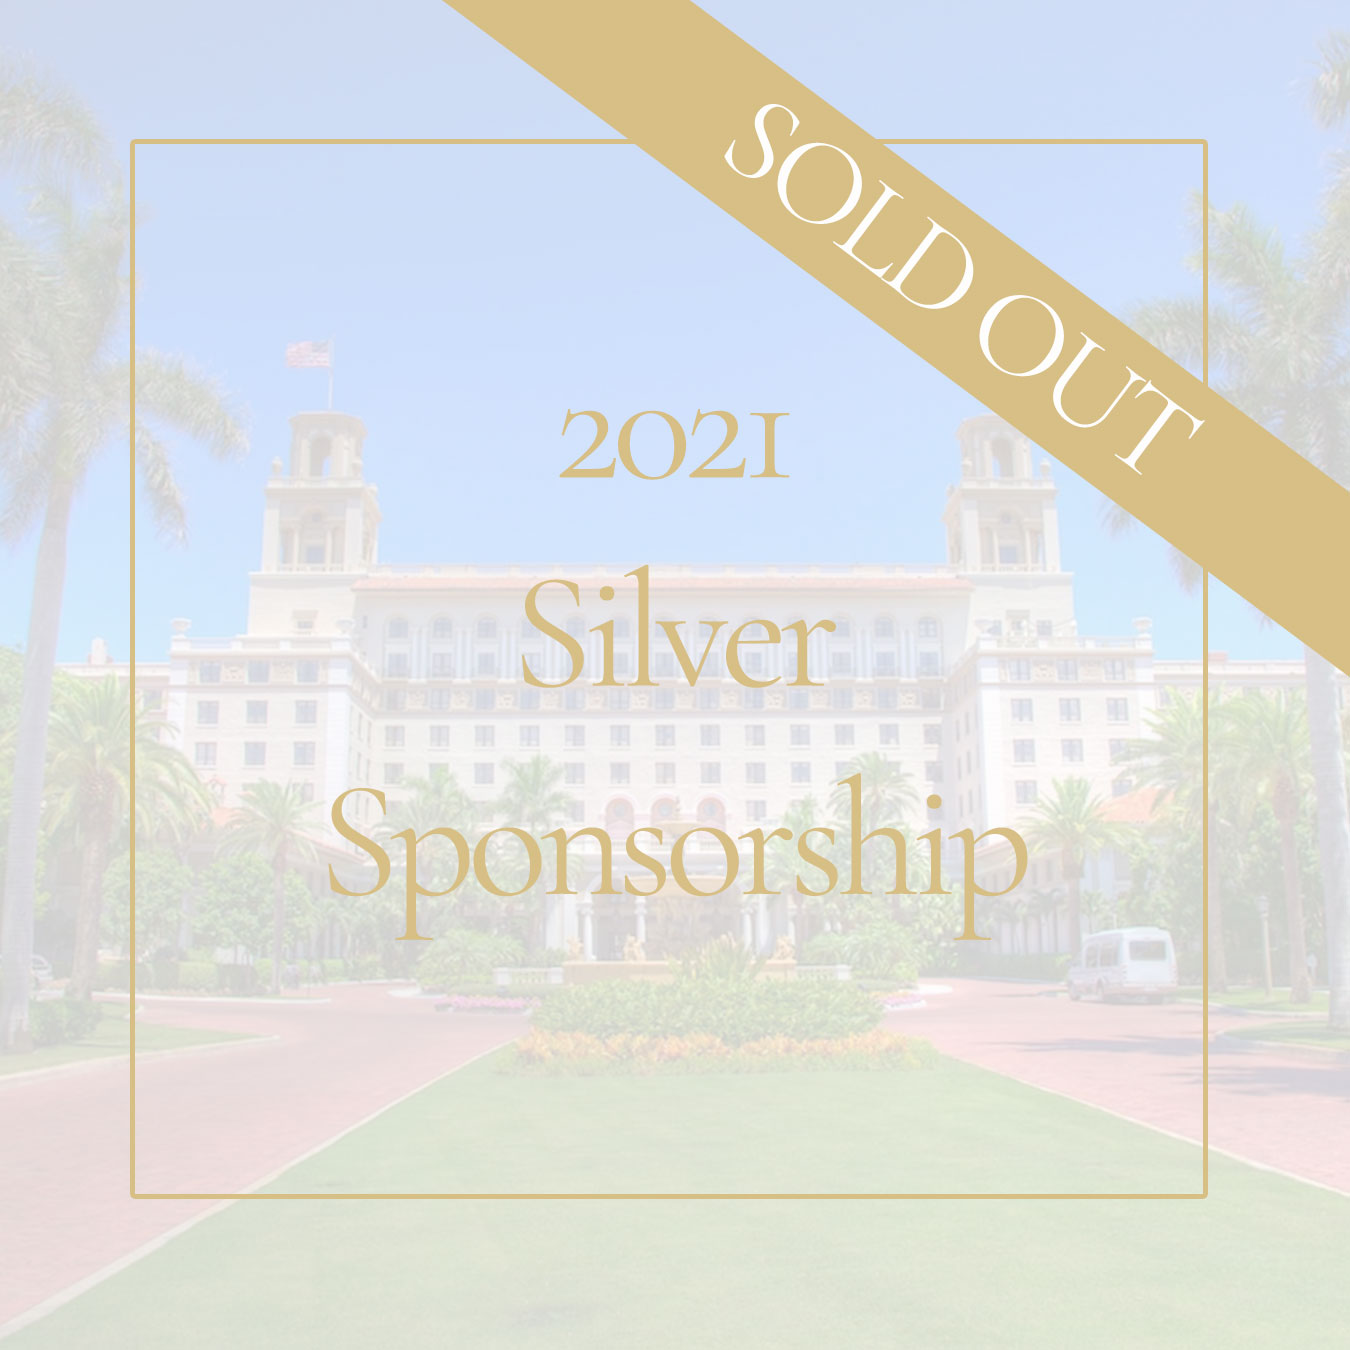 2021-item-gala-silver-sold-out-selfless-love-foundation